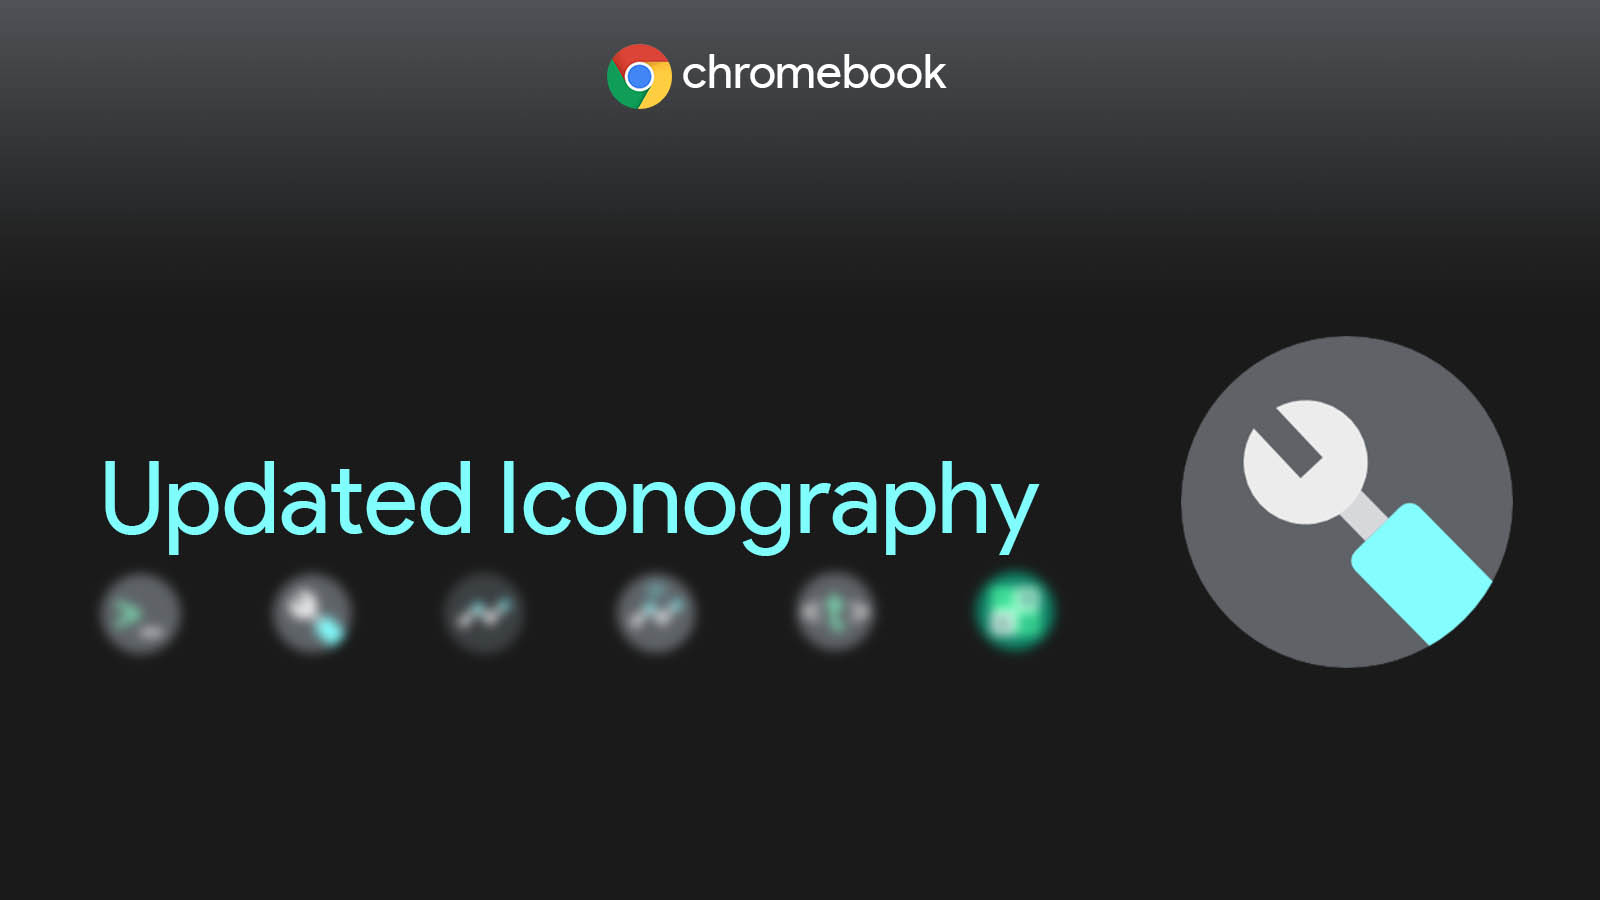 Six more Chromebook apps to receive refreshed iconography